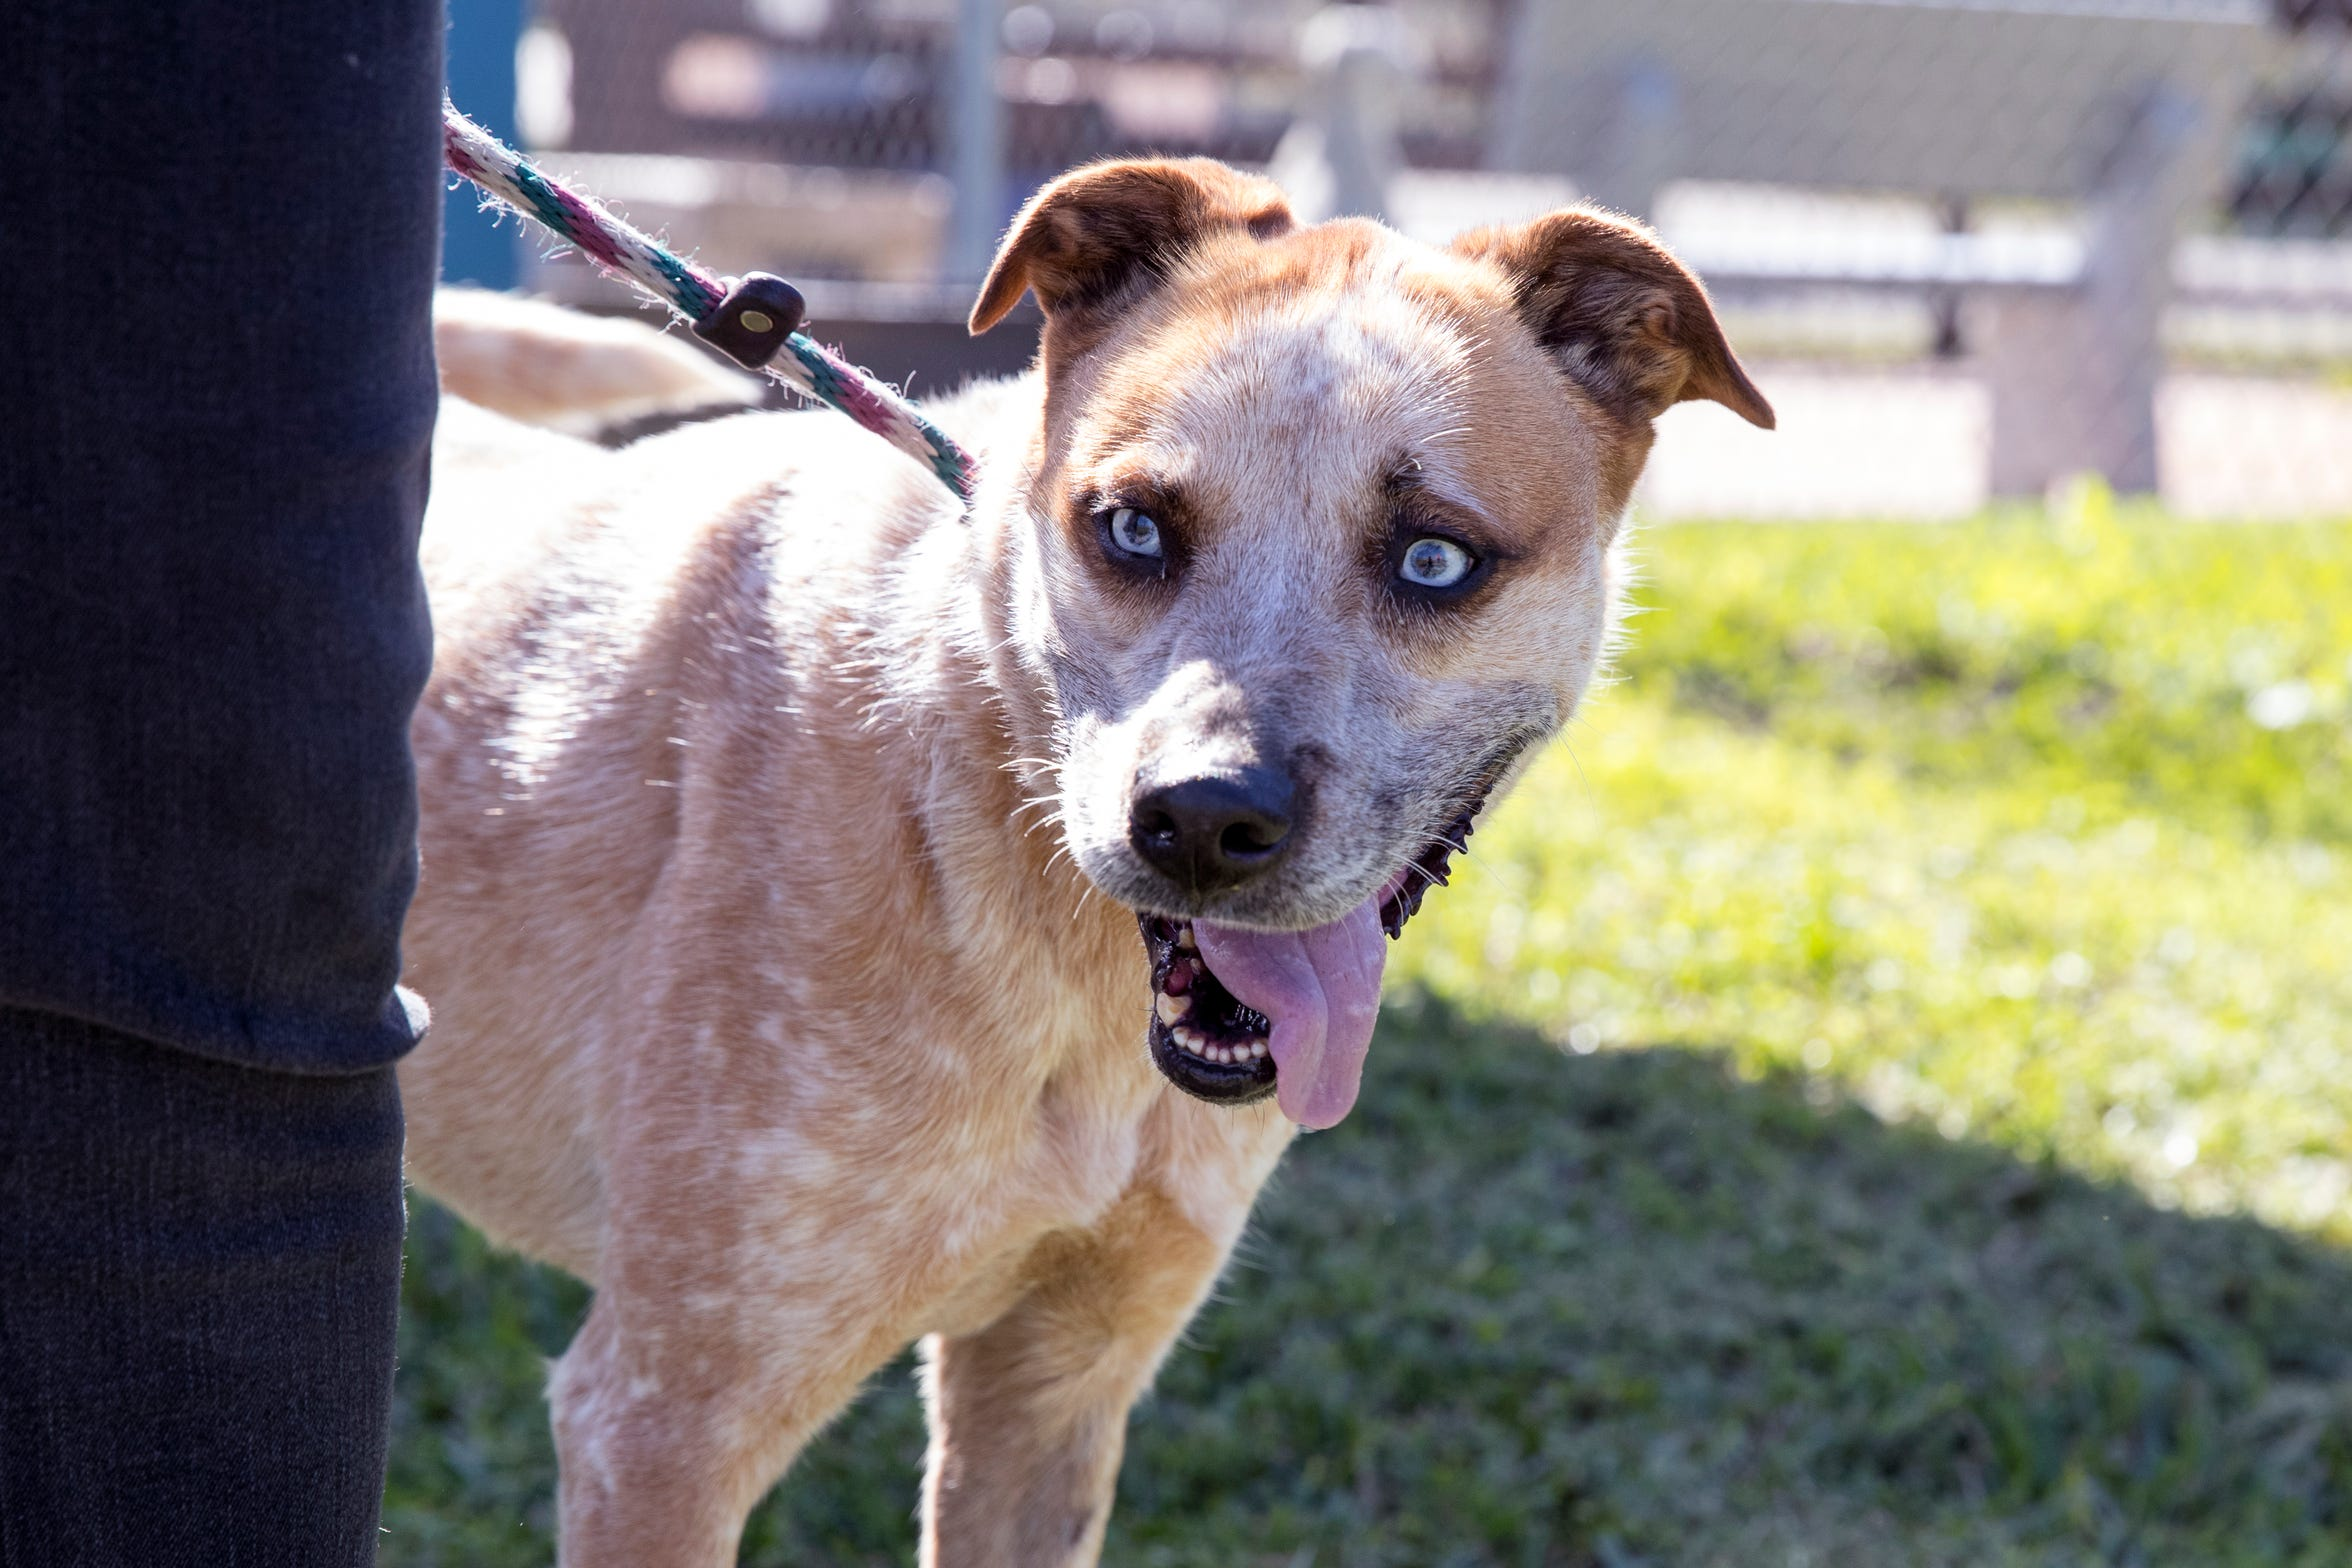 Sky is one of several dogs at the Gulf Coast Humane Society that loves kids. She is six years old, has been at the shelter for five years and likes to cuddle.